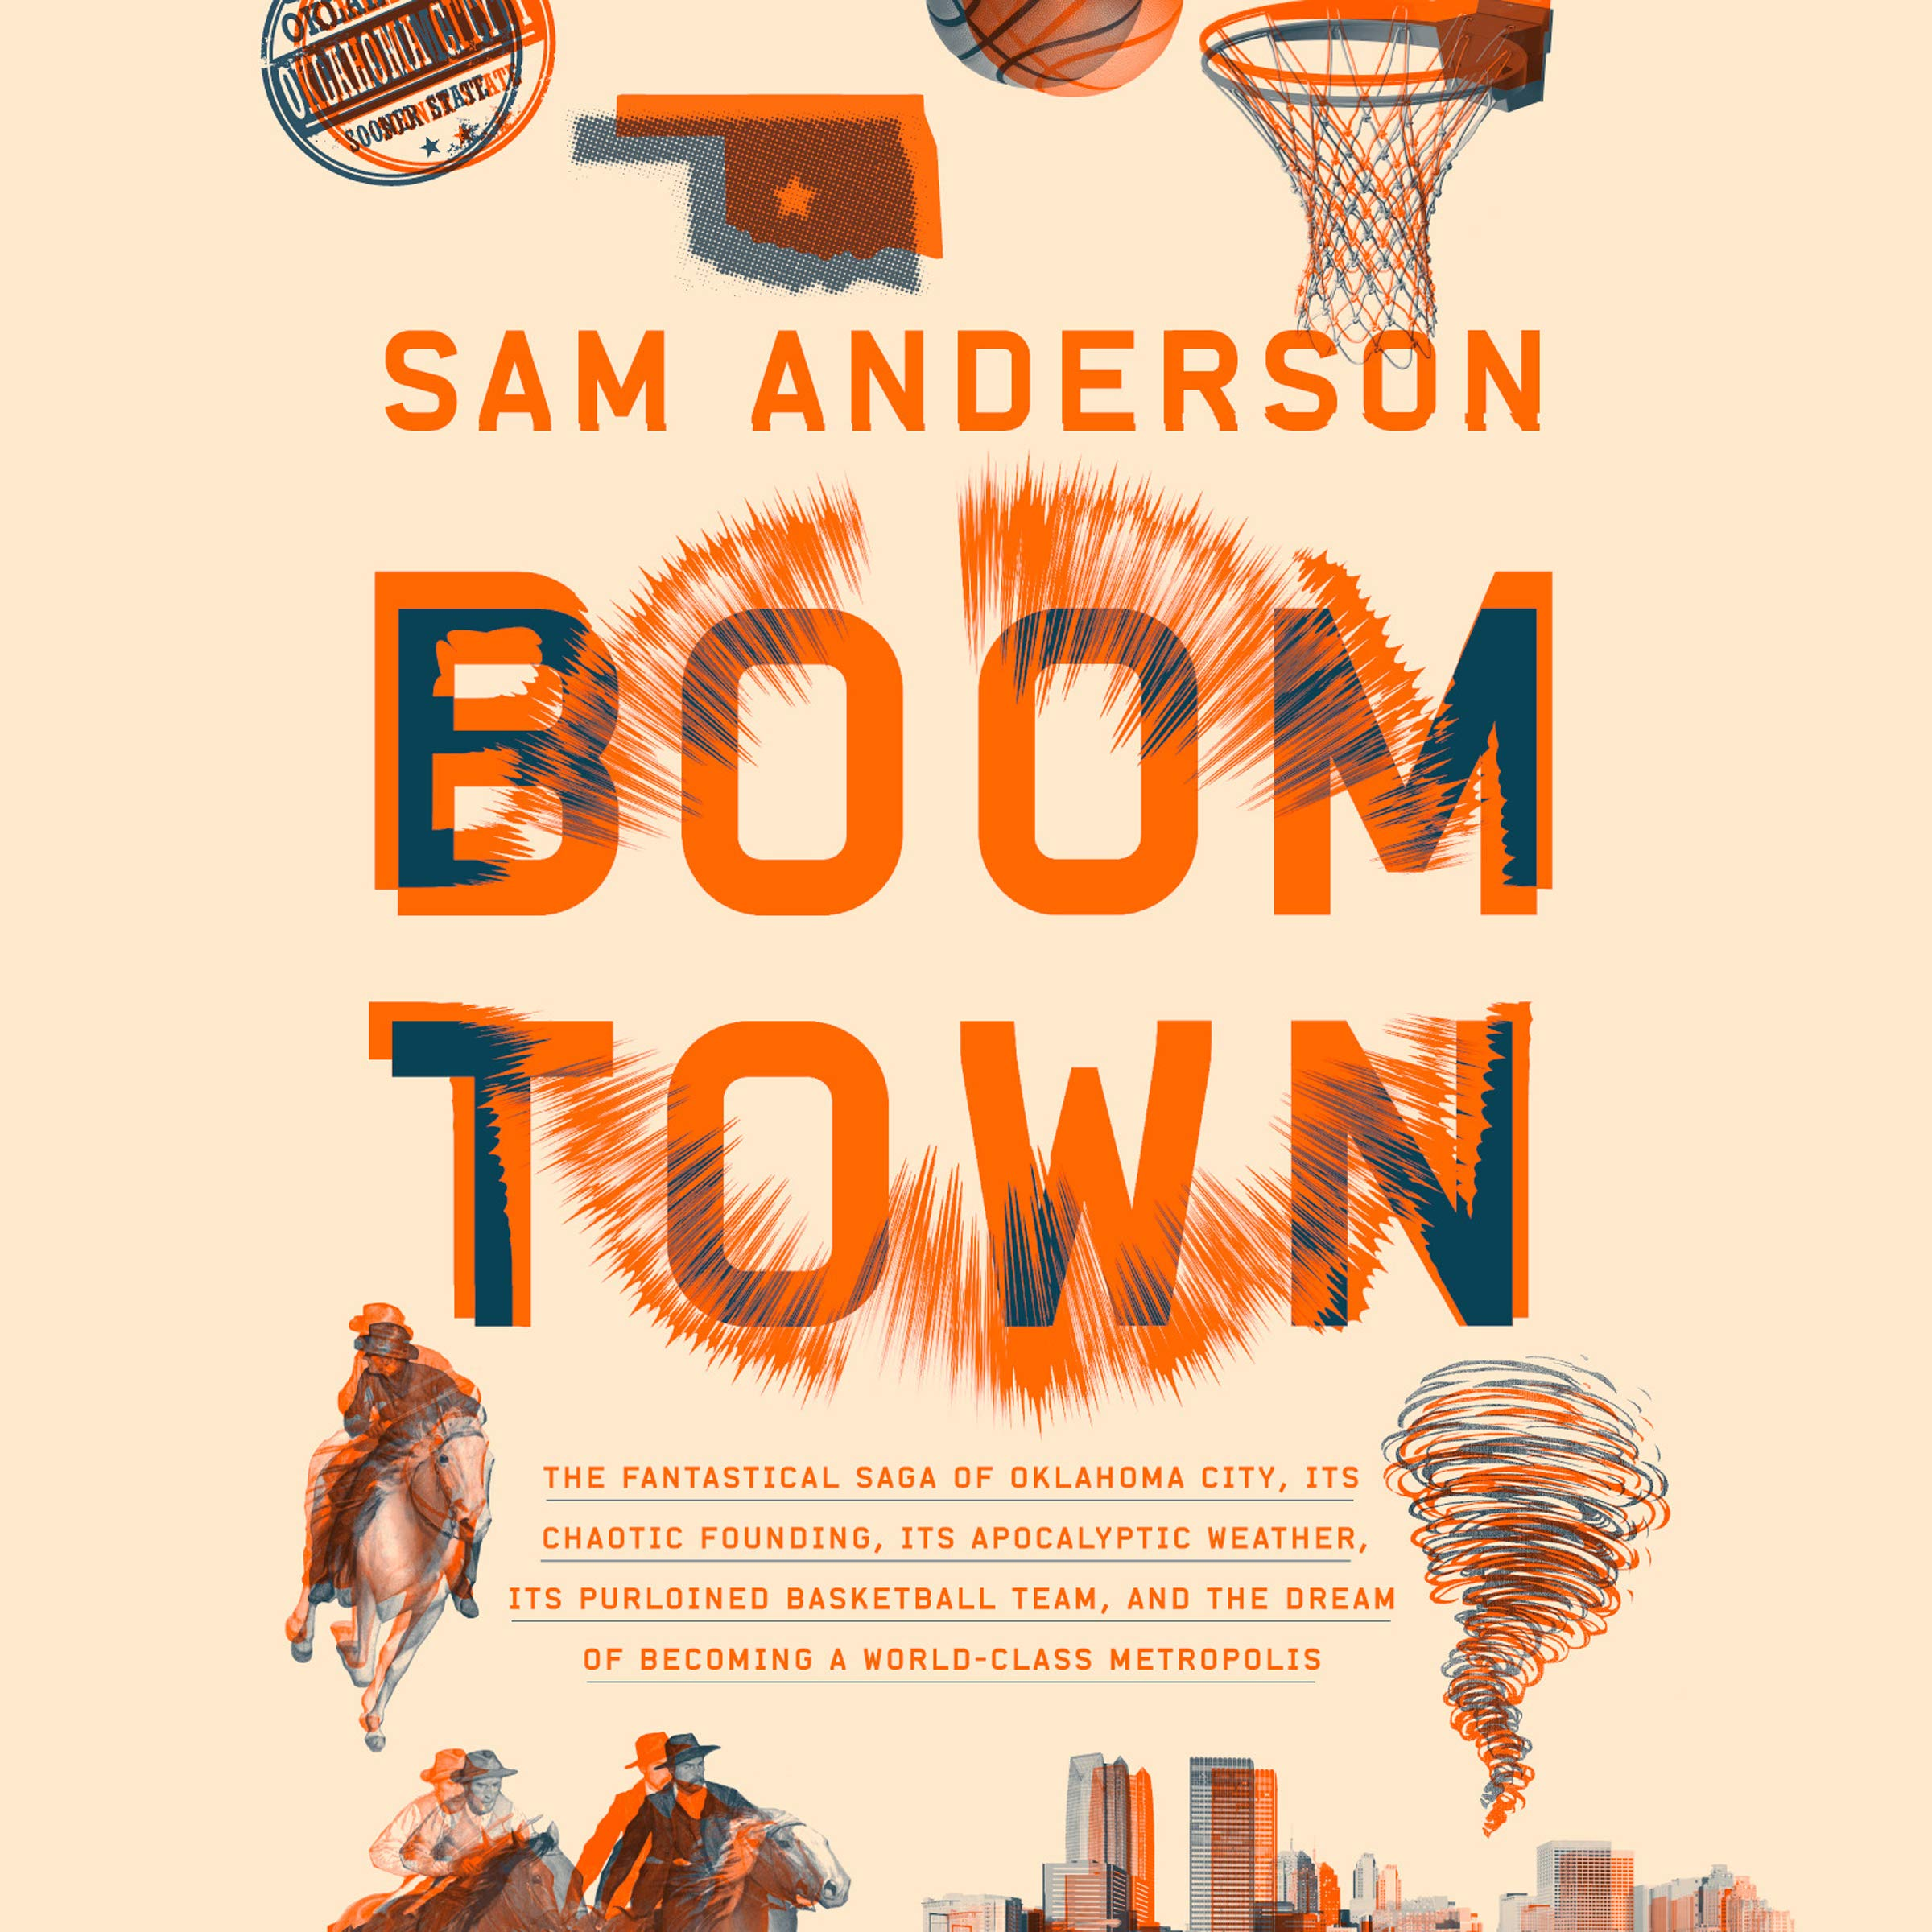 Boom Town: The Fantastical Saga of Oklahoma City, its Chaotic Founding. its Purloined Basketball Team, and the Dream of Becoming a World-class Metropolis